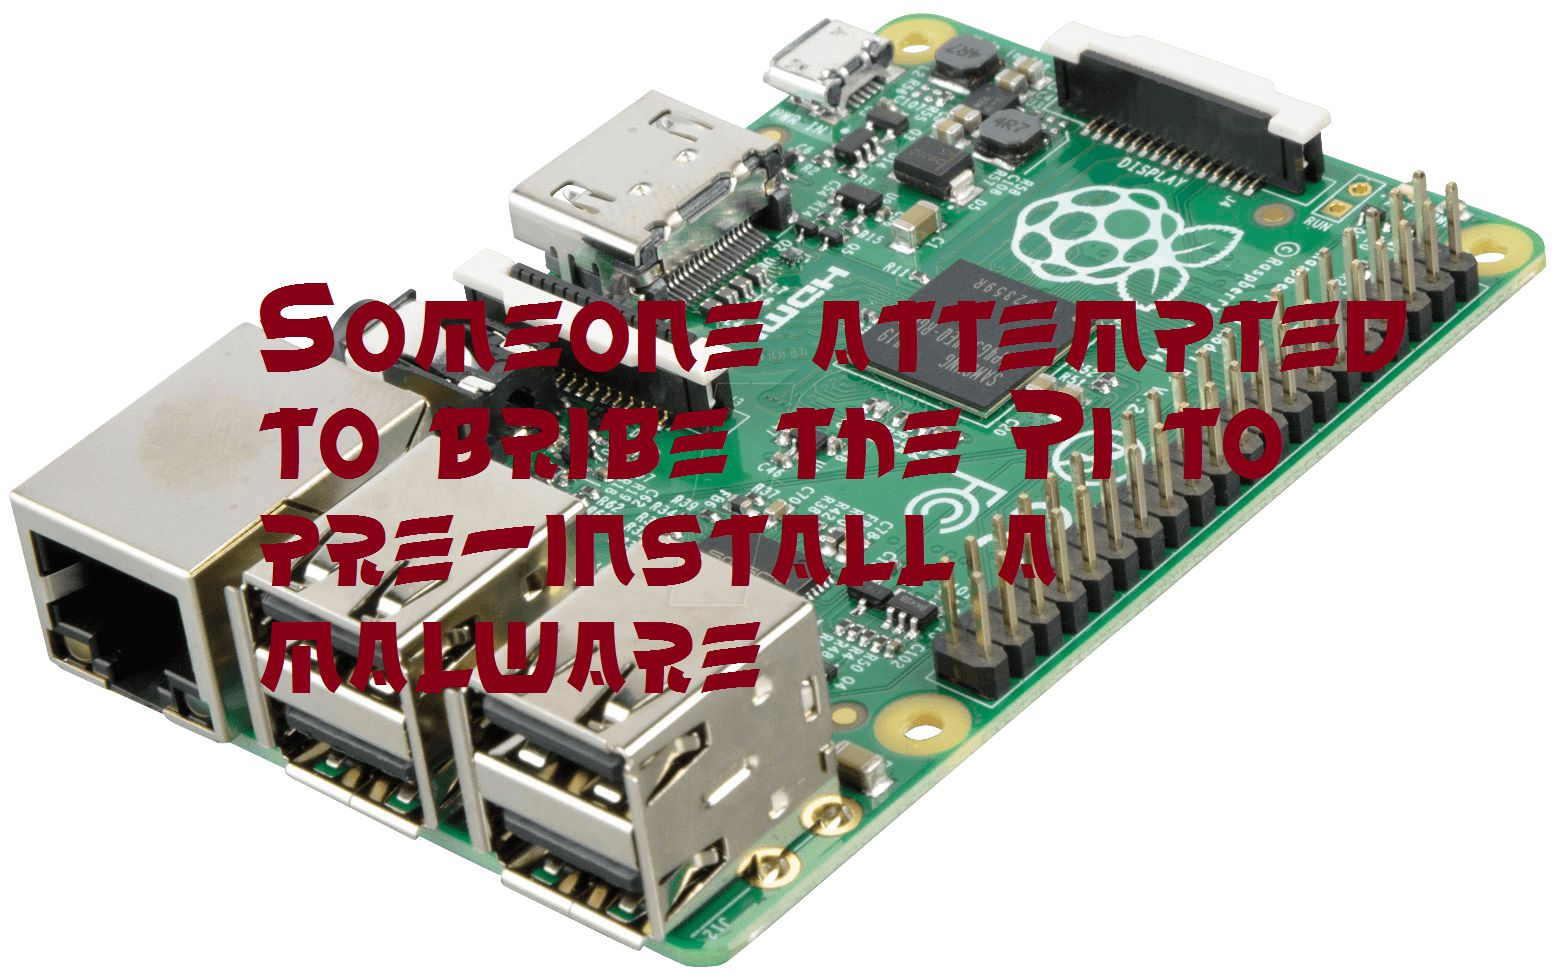 Attempt to bribe the Raspberry Pi, to pre- install a malware